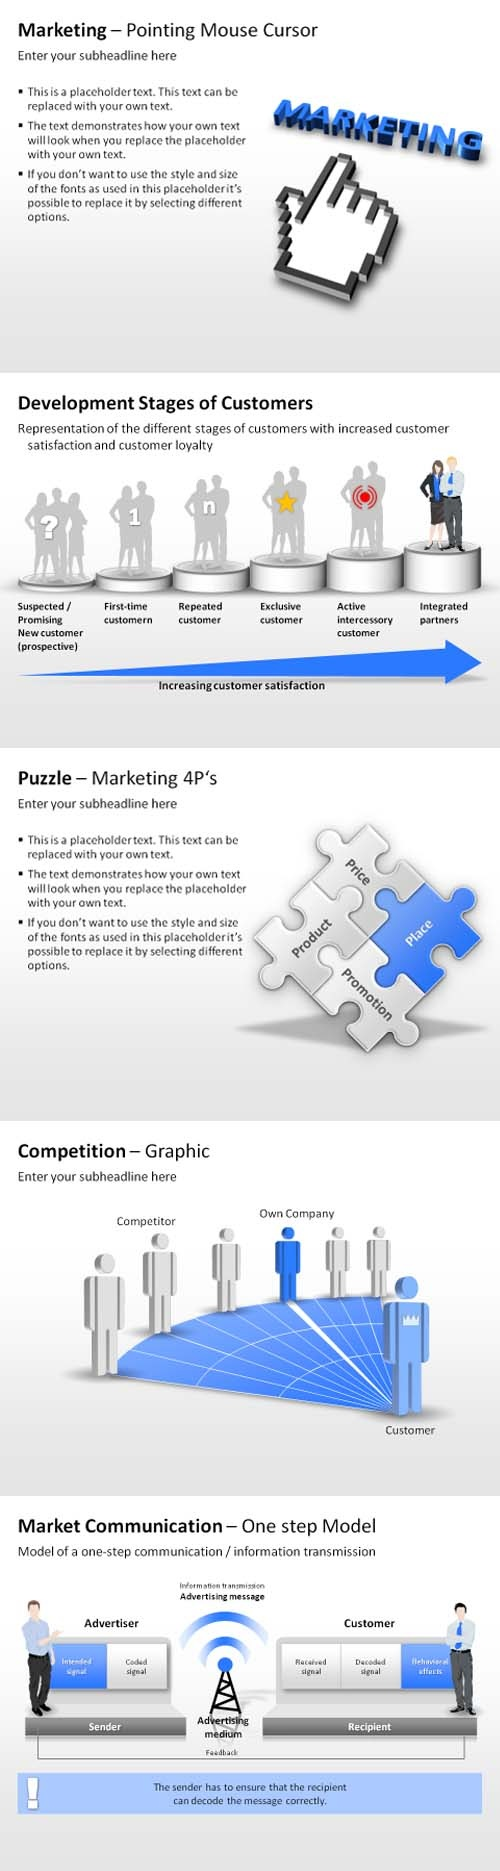 Marketing PowerPoint Templates #powerpoint #business